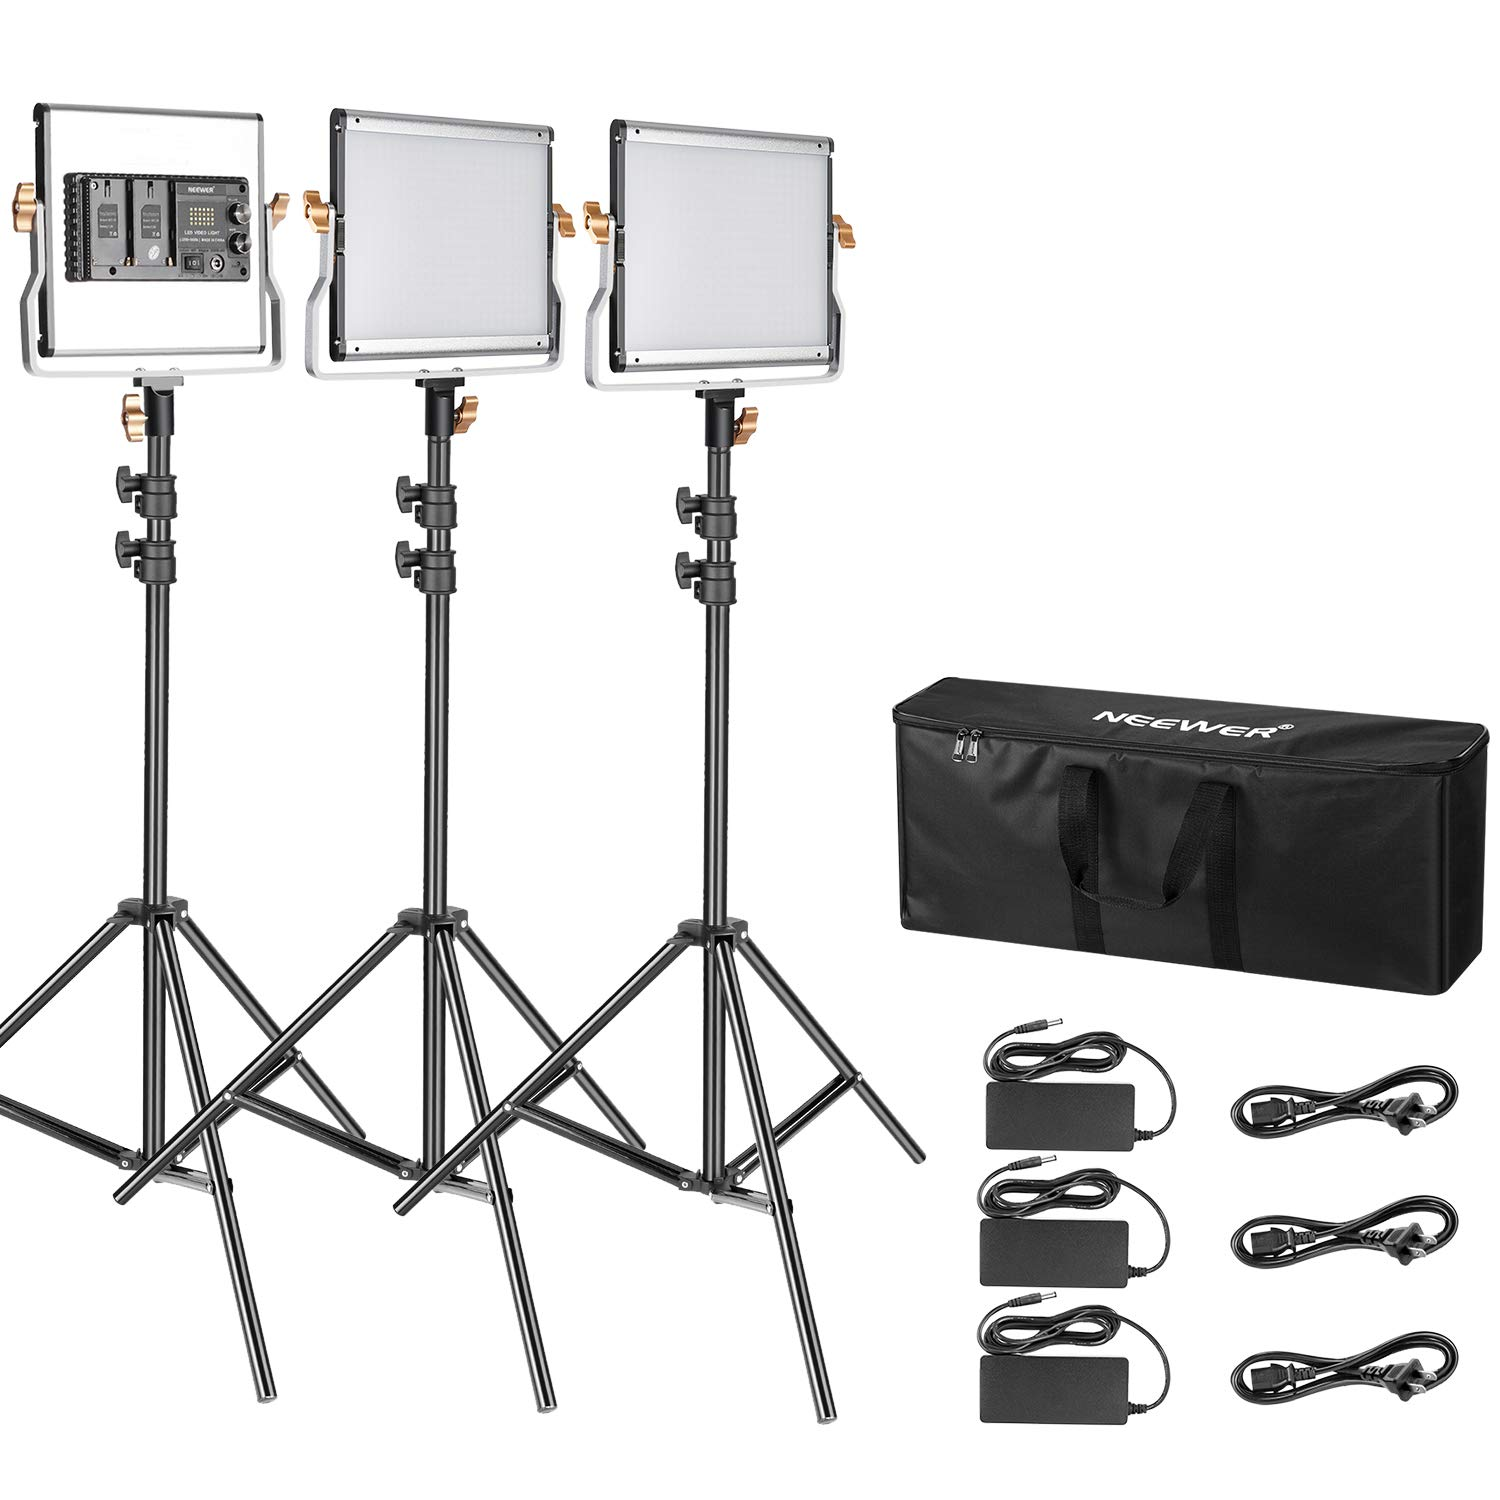 Neewer 3 Packs Dimmable Bi-Color 480 LED Video Light and Stand Lighting Kit:3200-5600K CRI 96+ LED Panel, Premium 200cm Light Stand and Large Carry Bag for Studio YouTube Video Outdoor Photography by Neewer